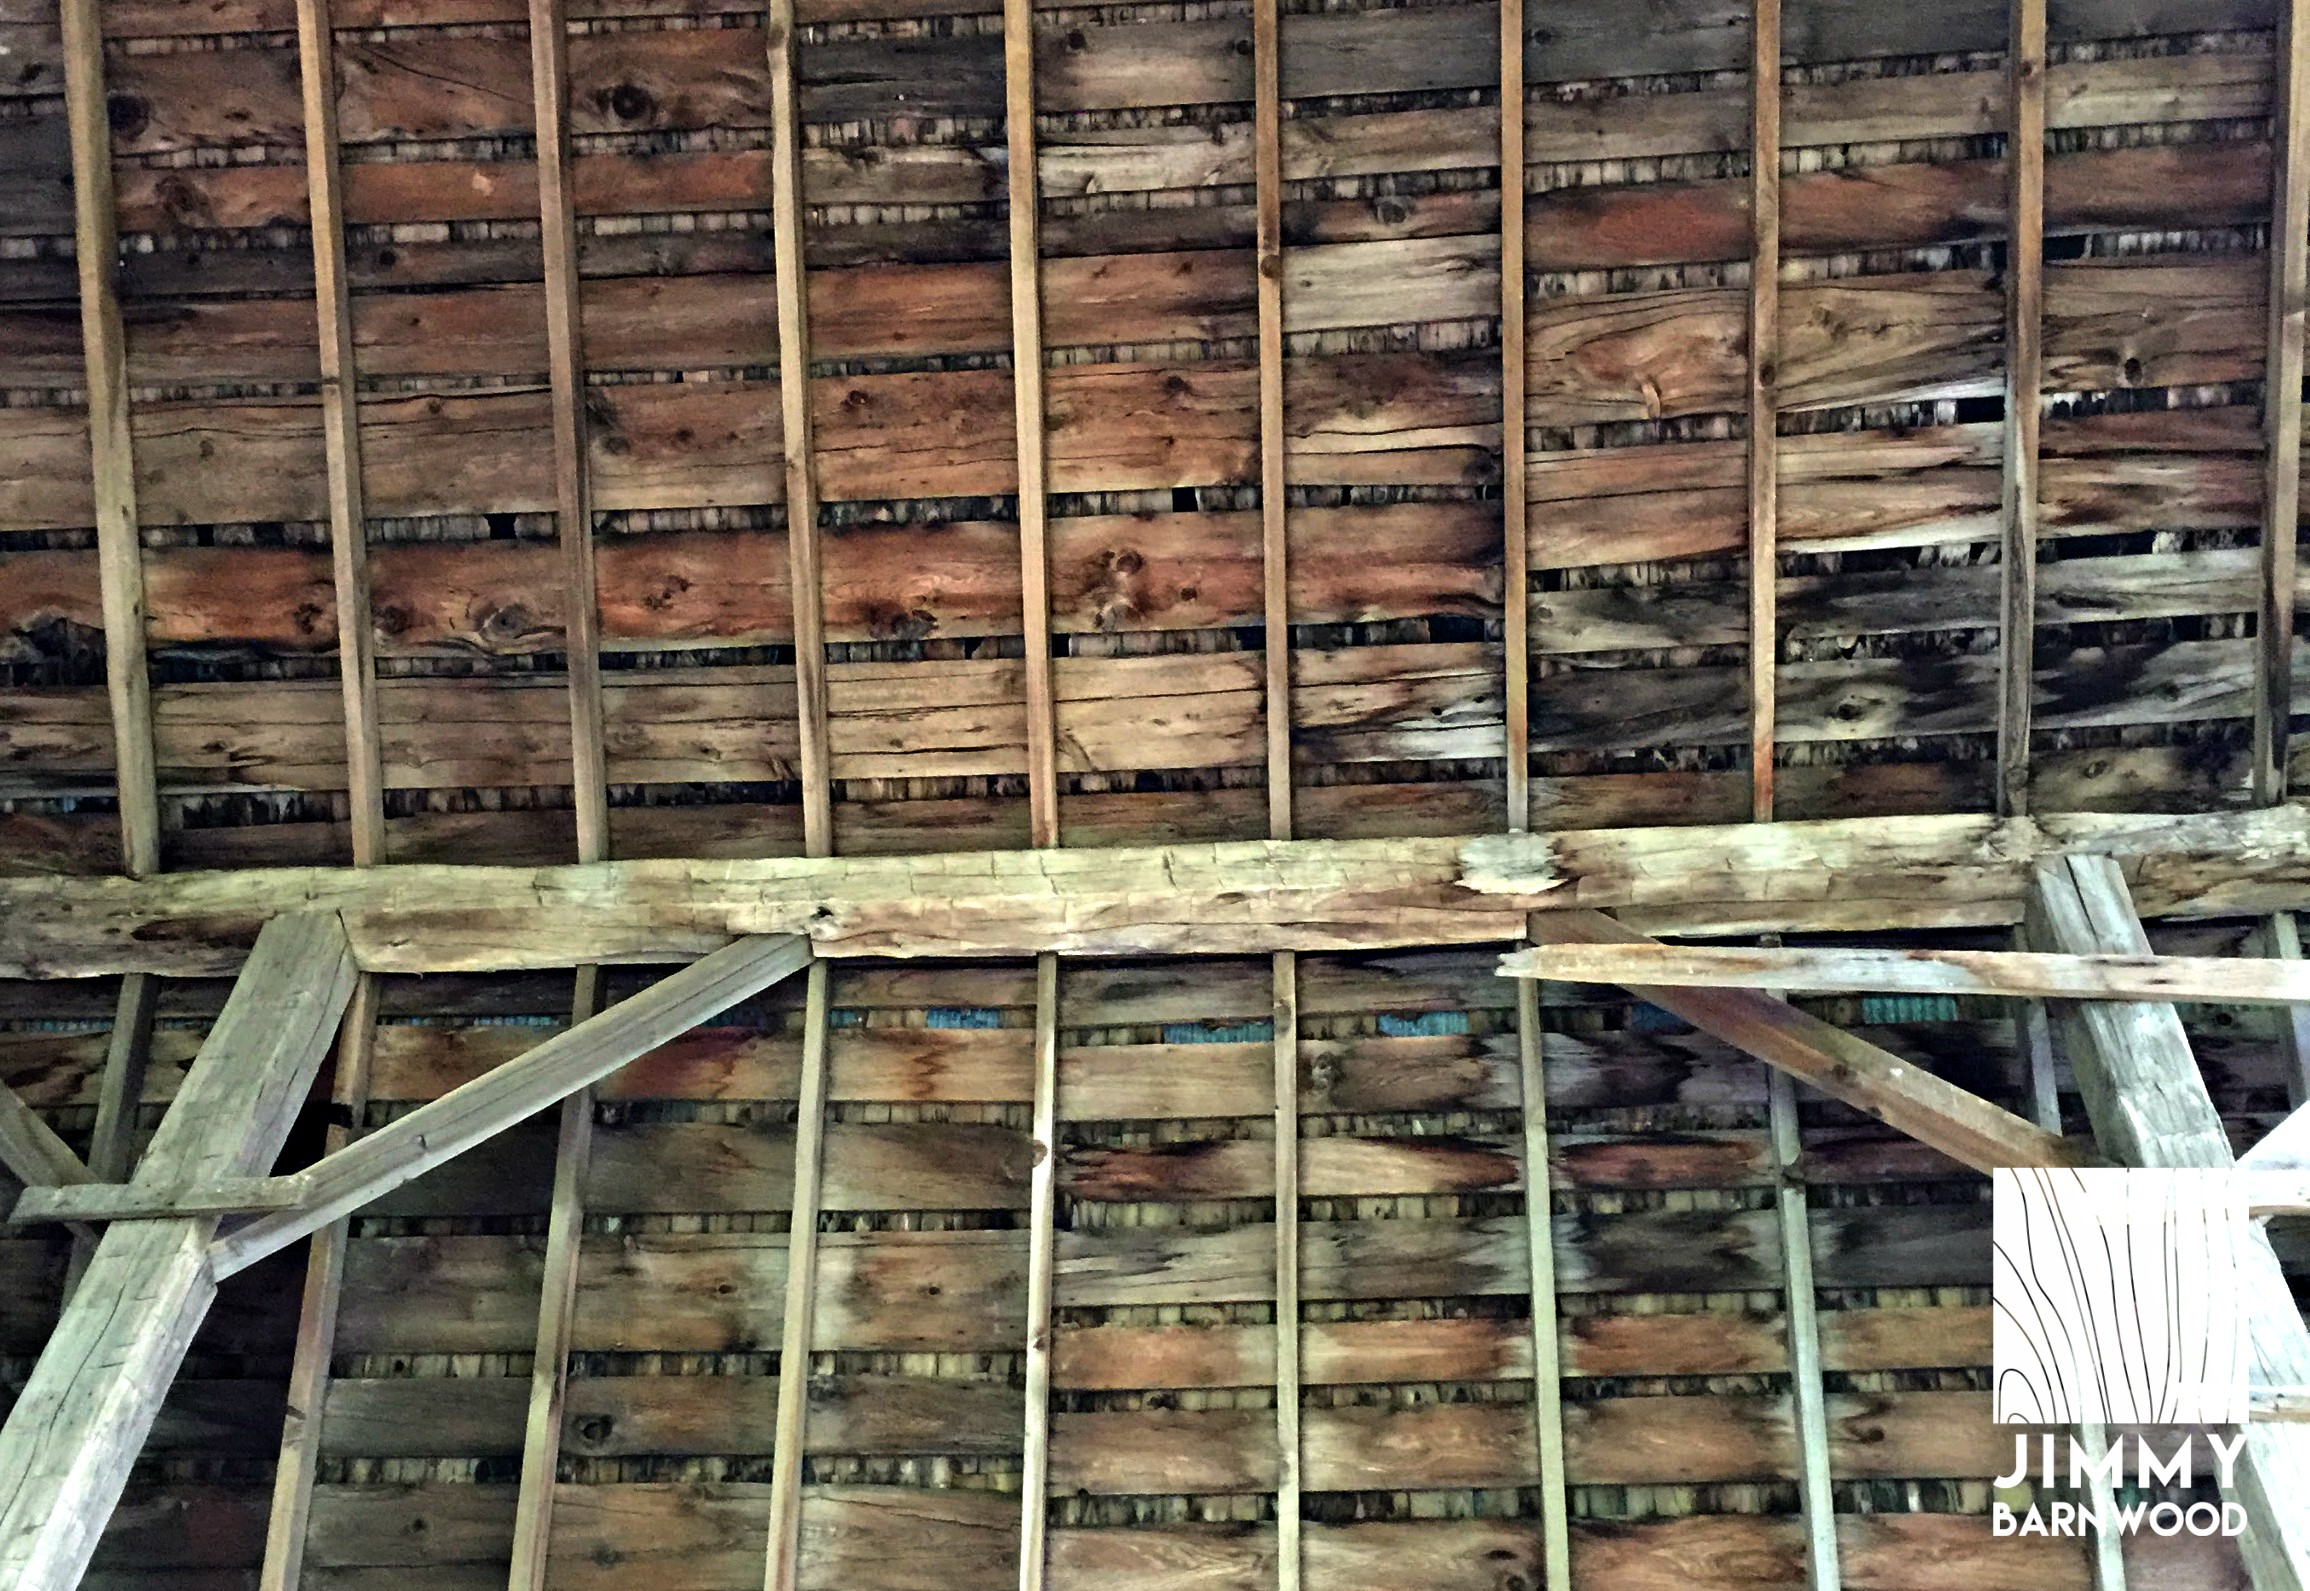 jimmy-barnwood-naily-board-roof-boards-reclaimed-wood-wall.jpg